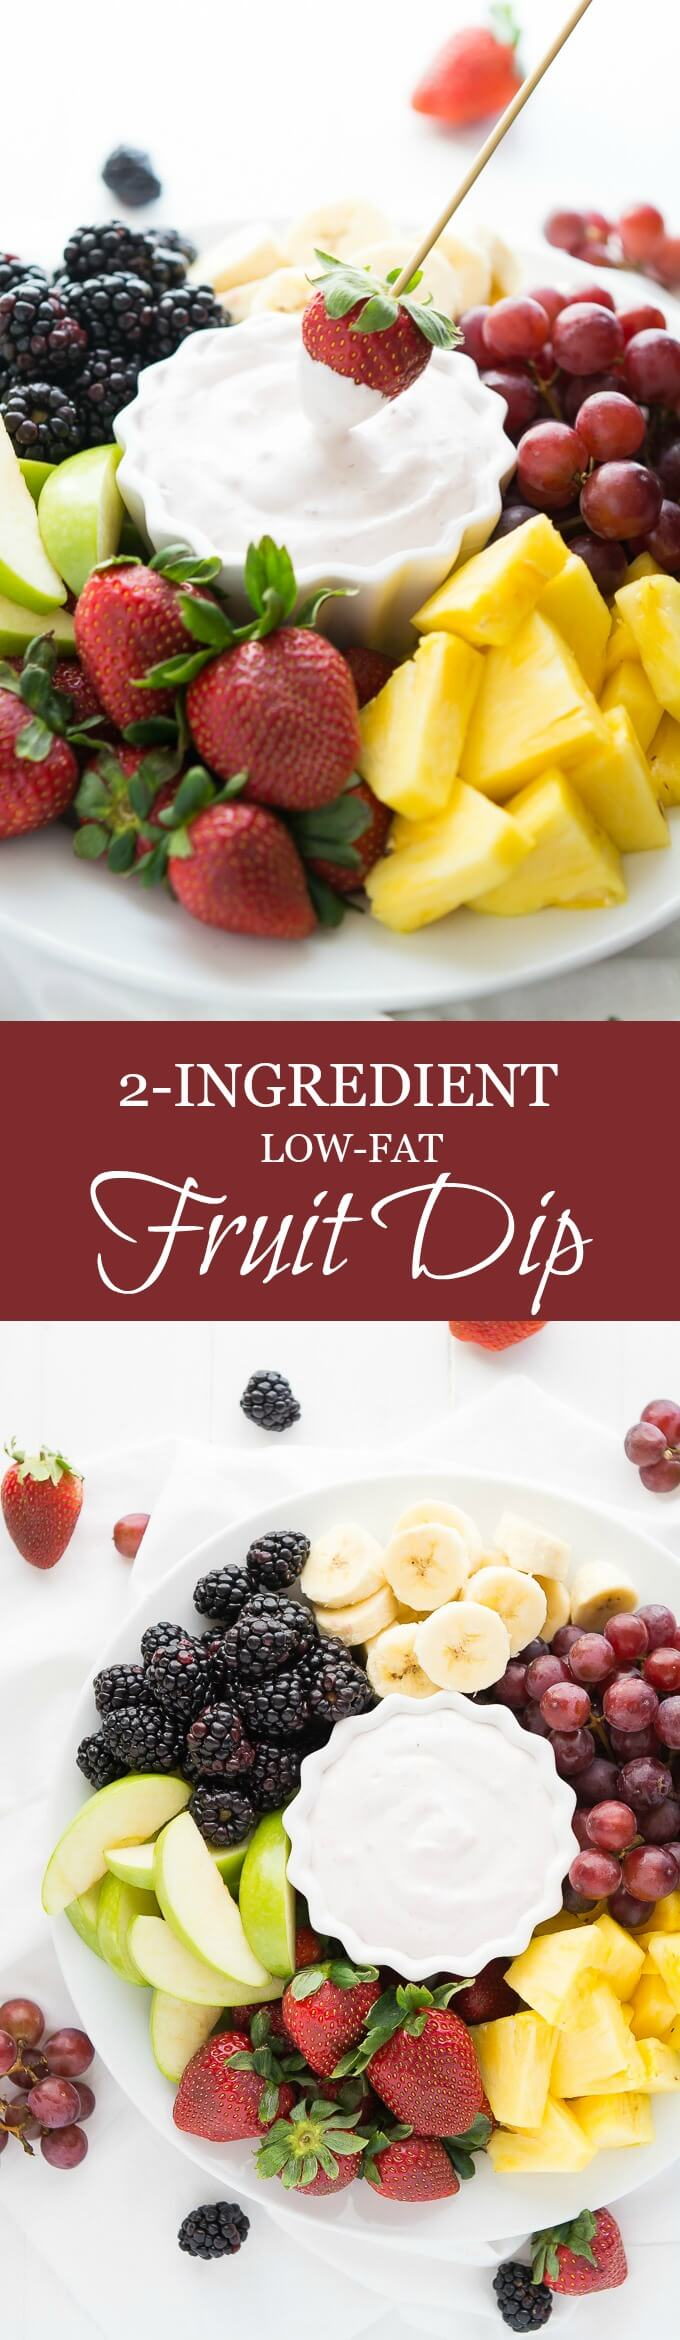 Keep your snack healthy with this 2-Ingredient Low-Fat Fruit Dip.